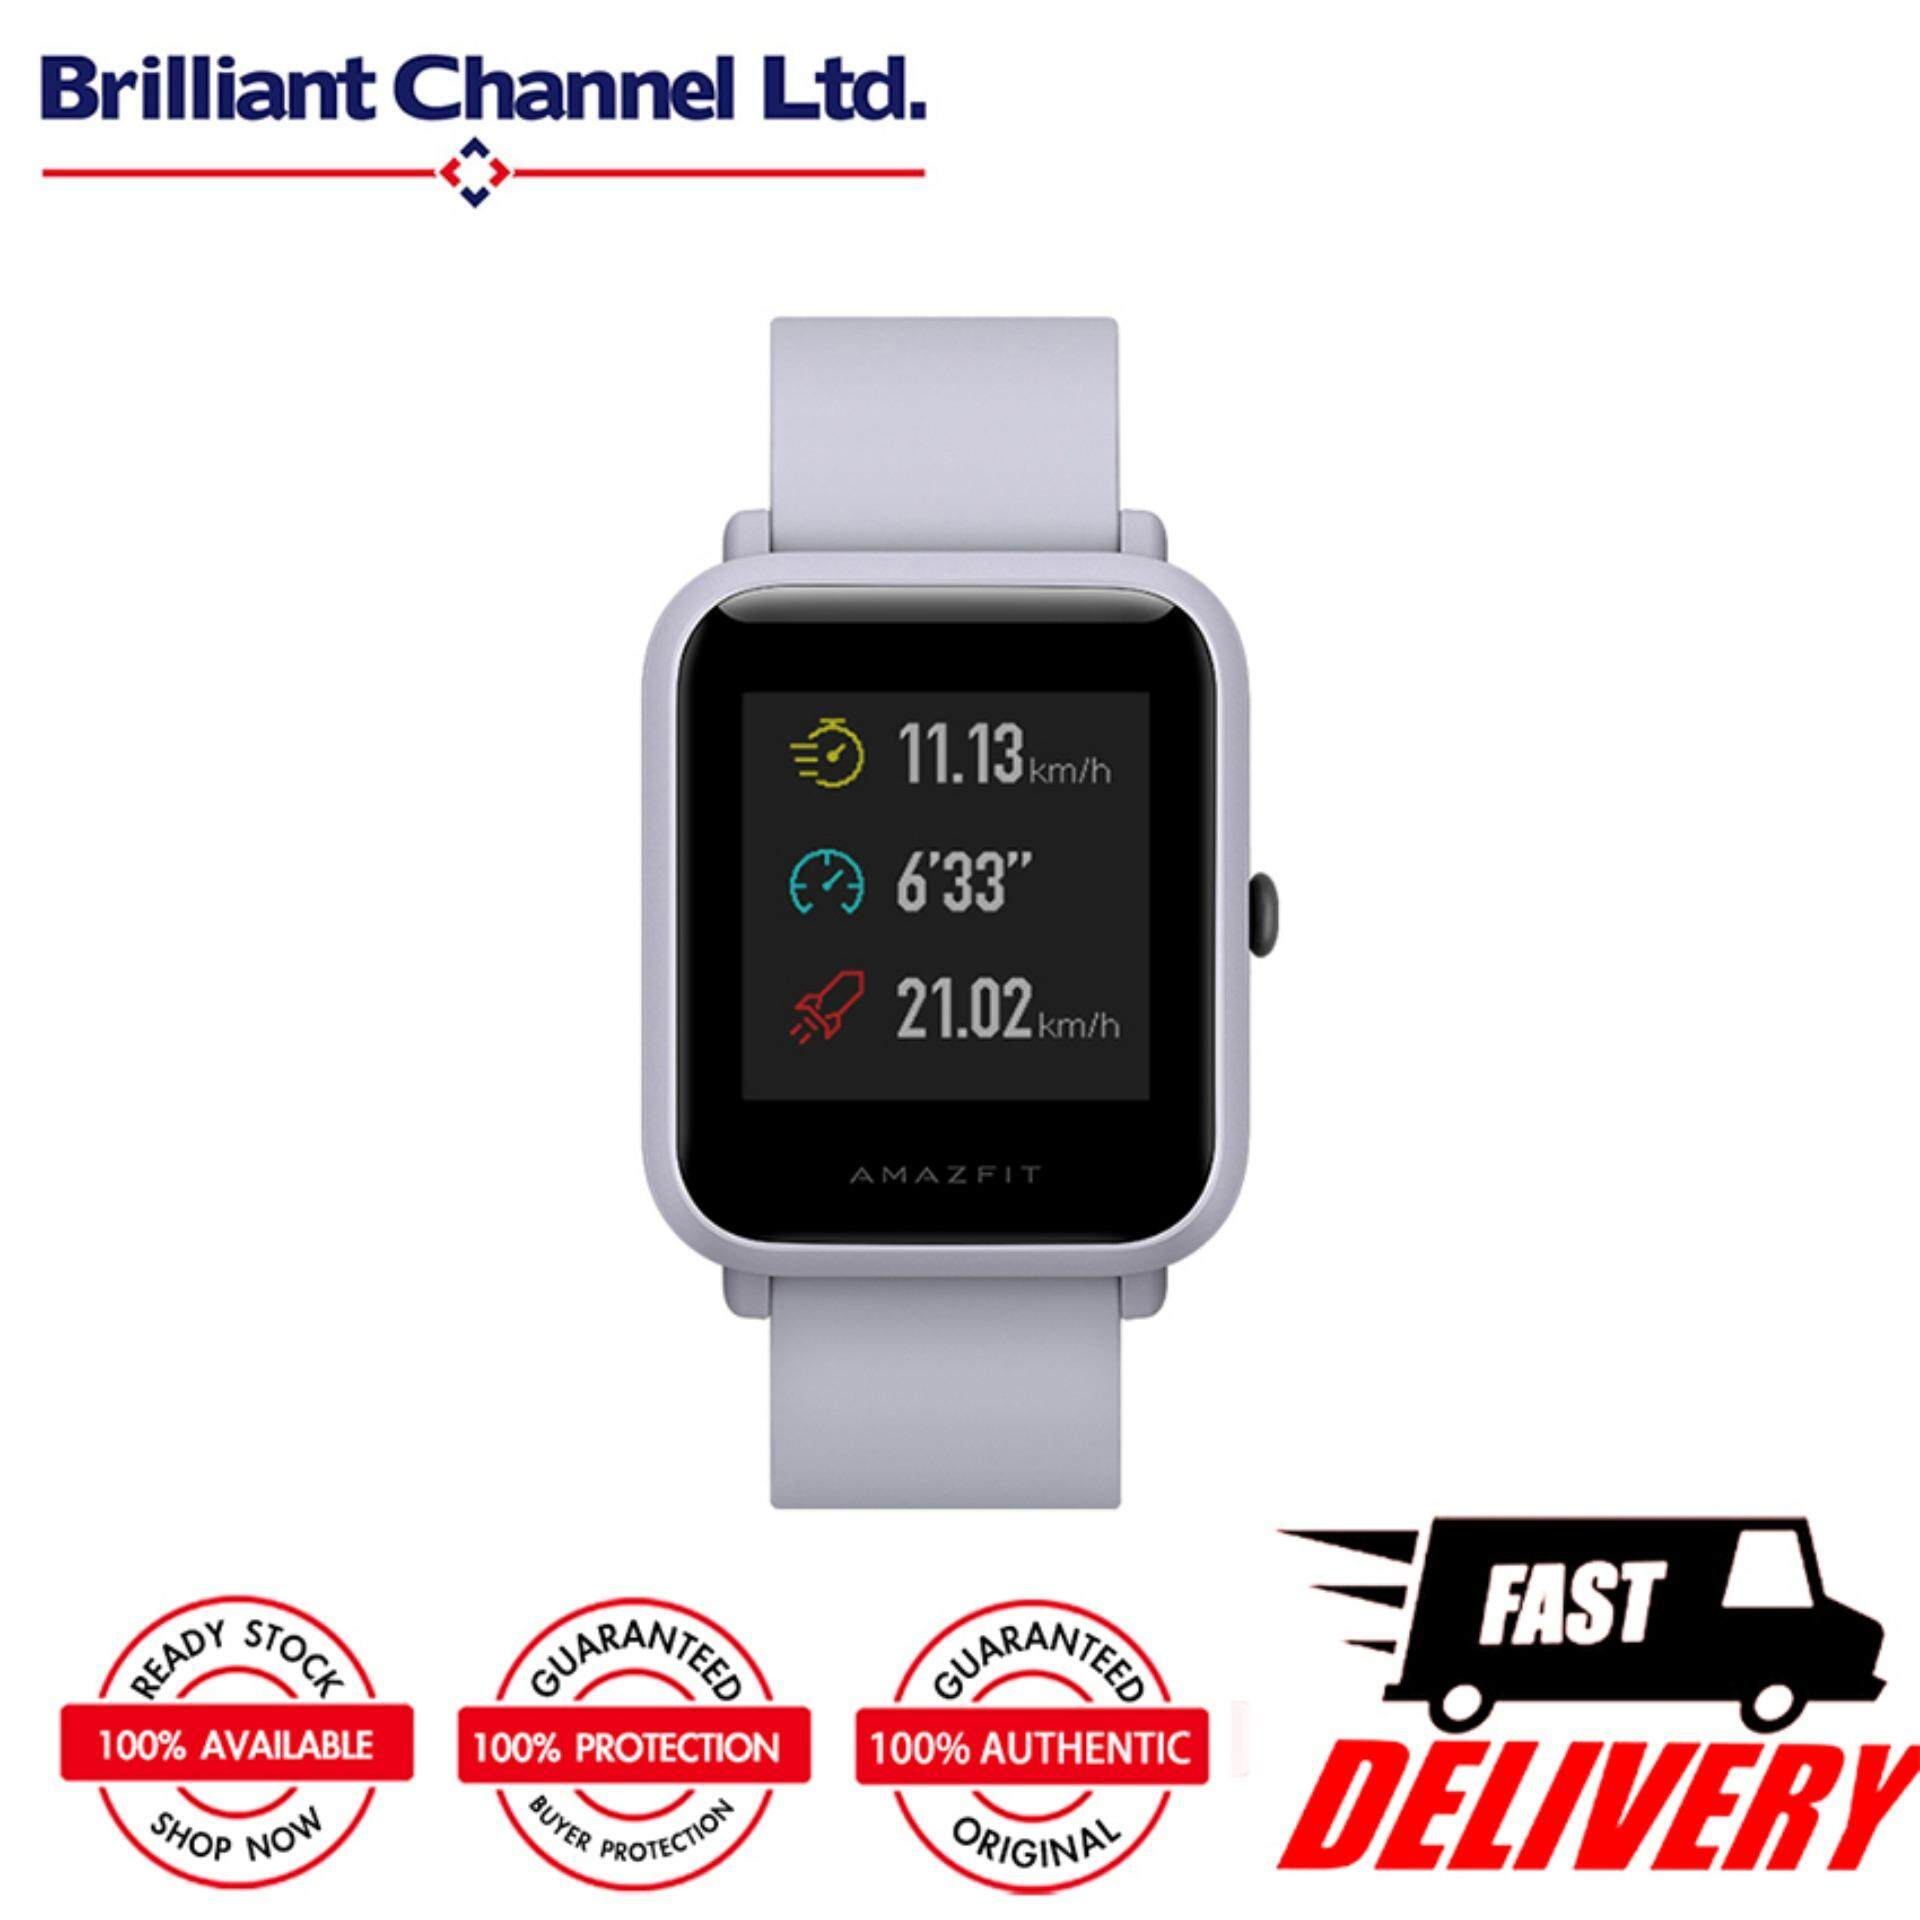 Xiaomi Huami Amazfit LCD display Heart Rate Monitor Water Resistant IP68 Bluetooth 4.0 GPS smartwatch (English ver.)